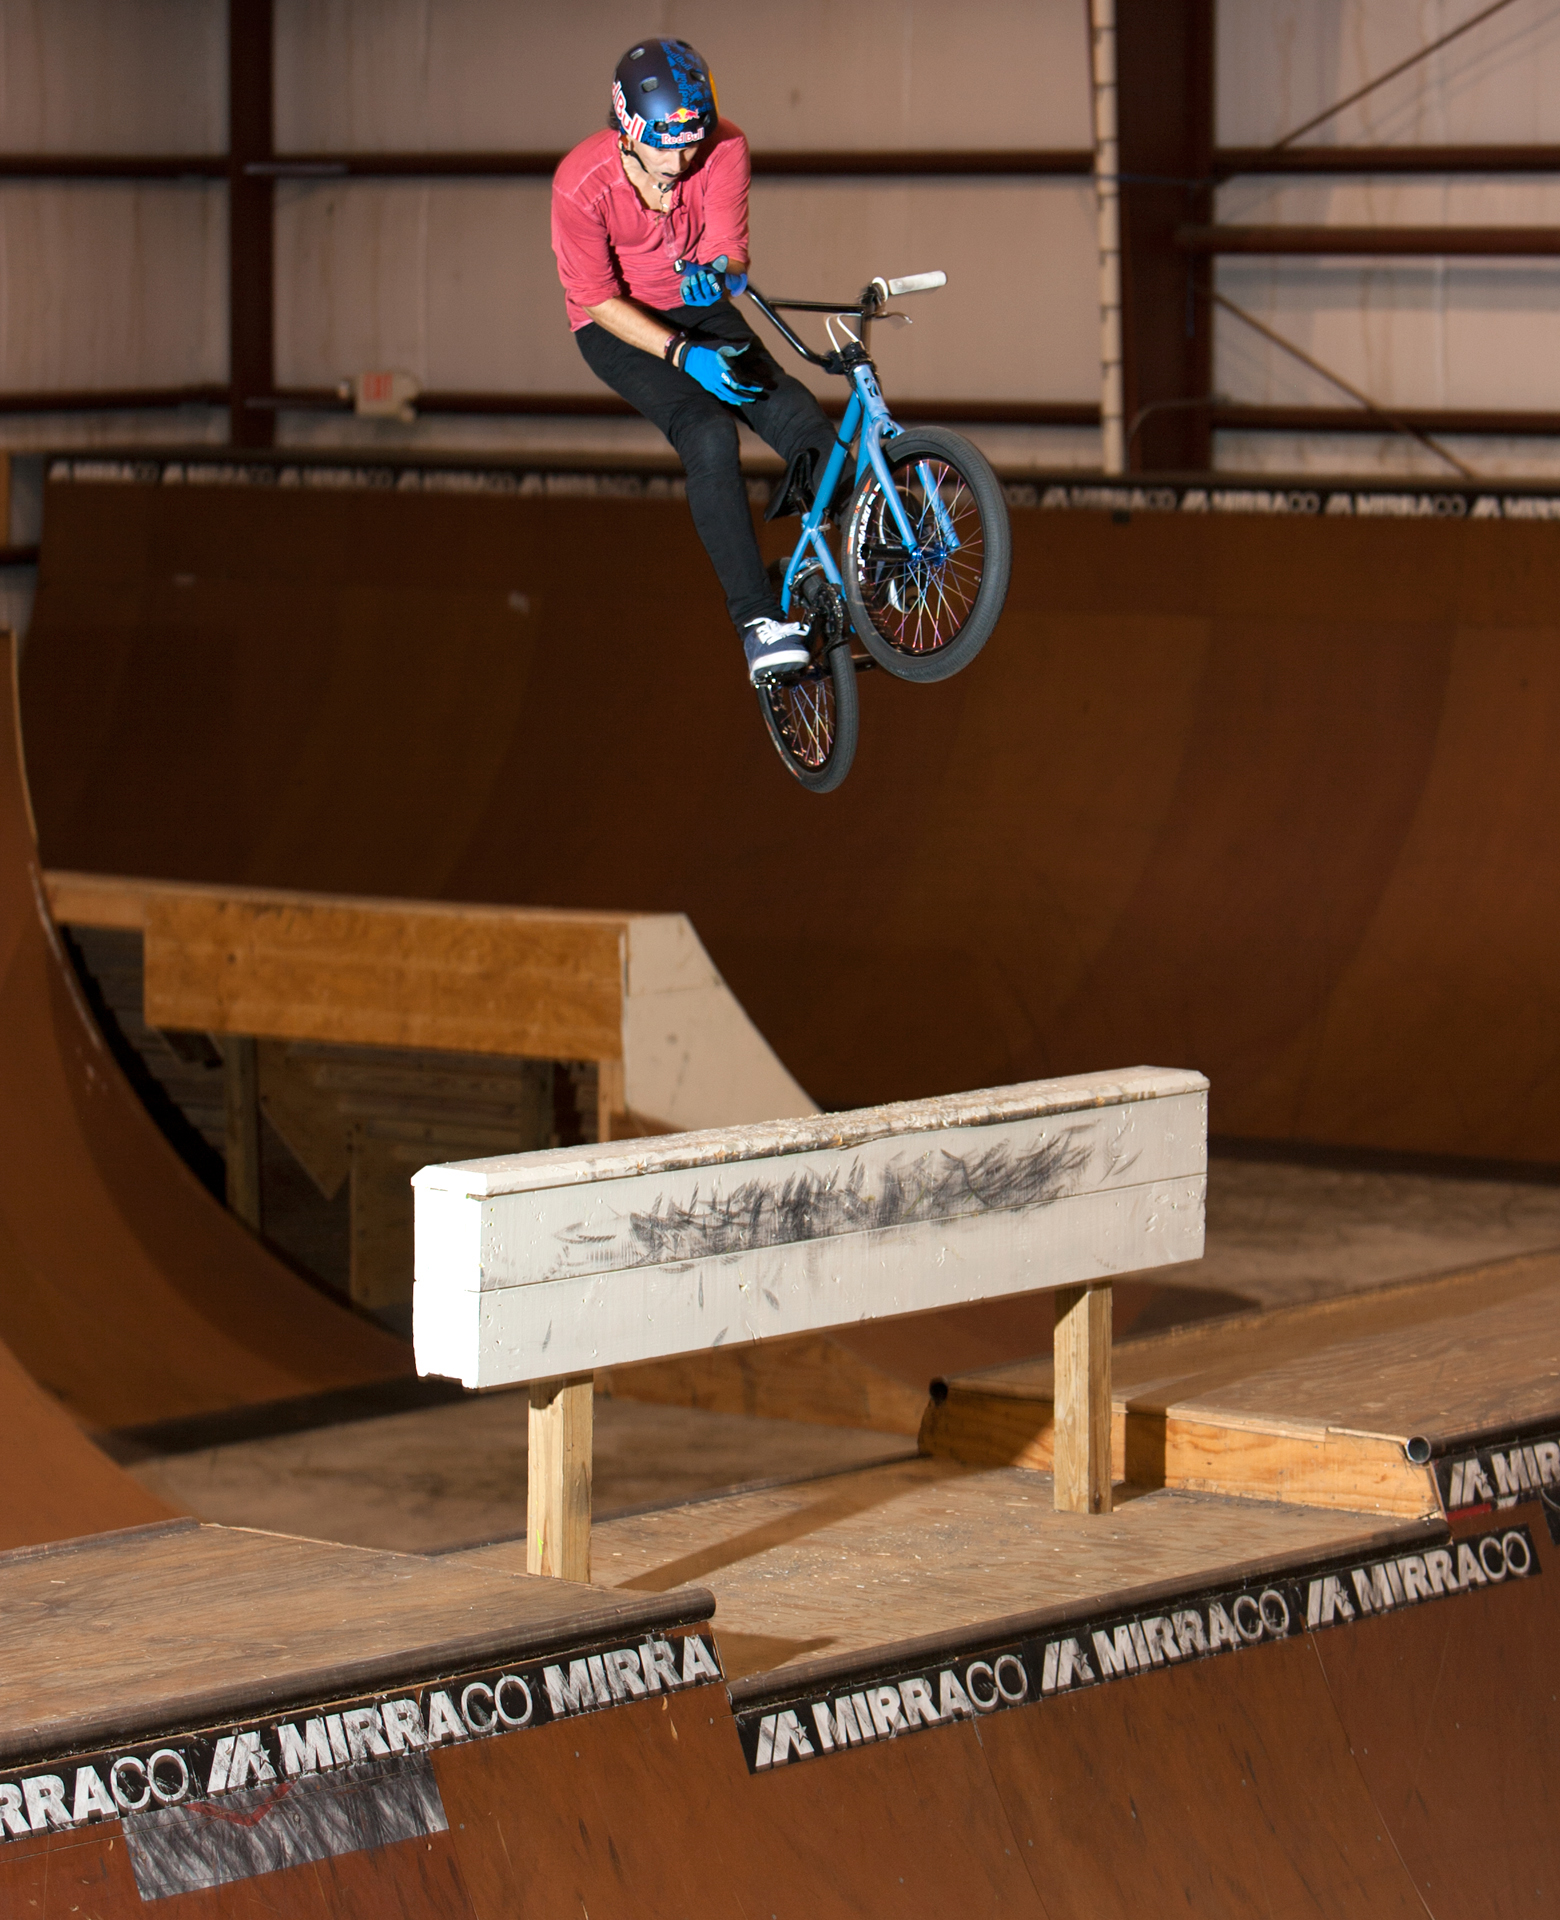 Dhers, barspin transfer